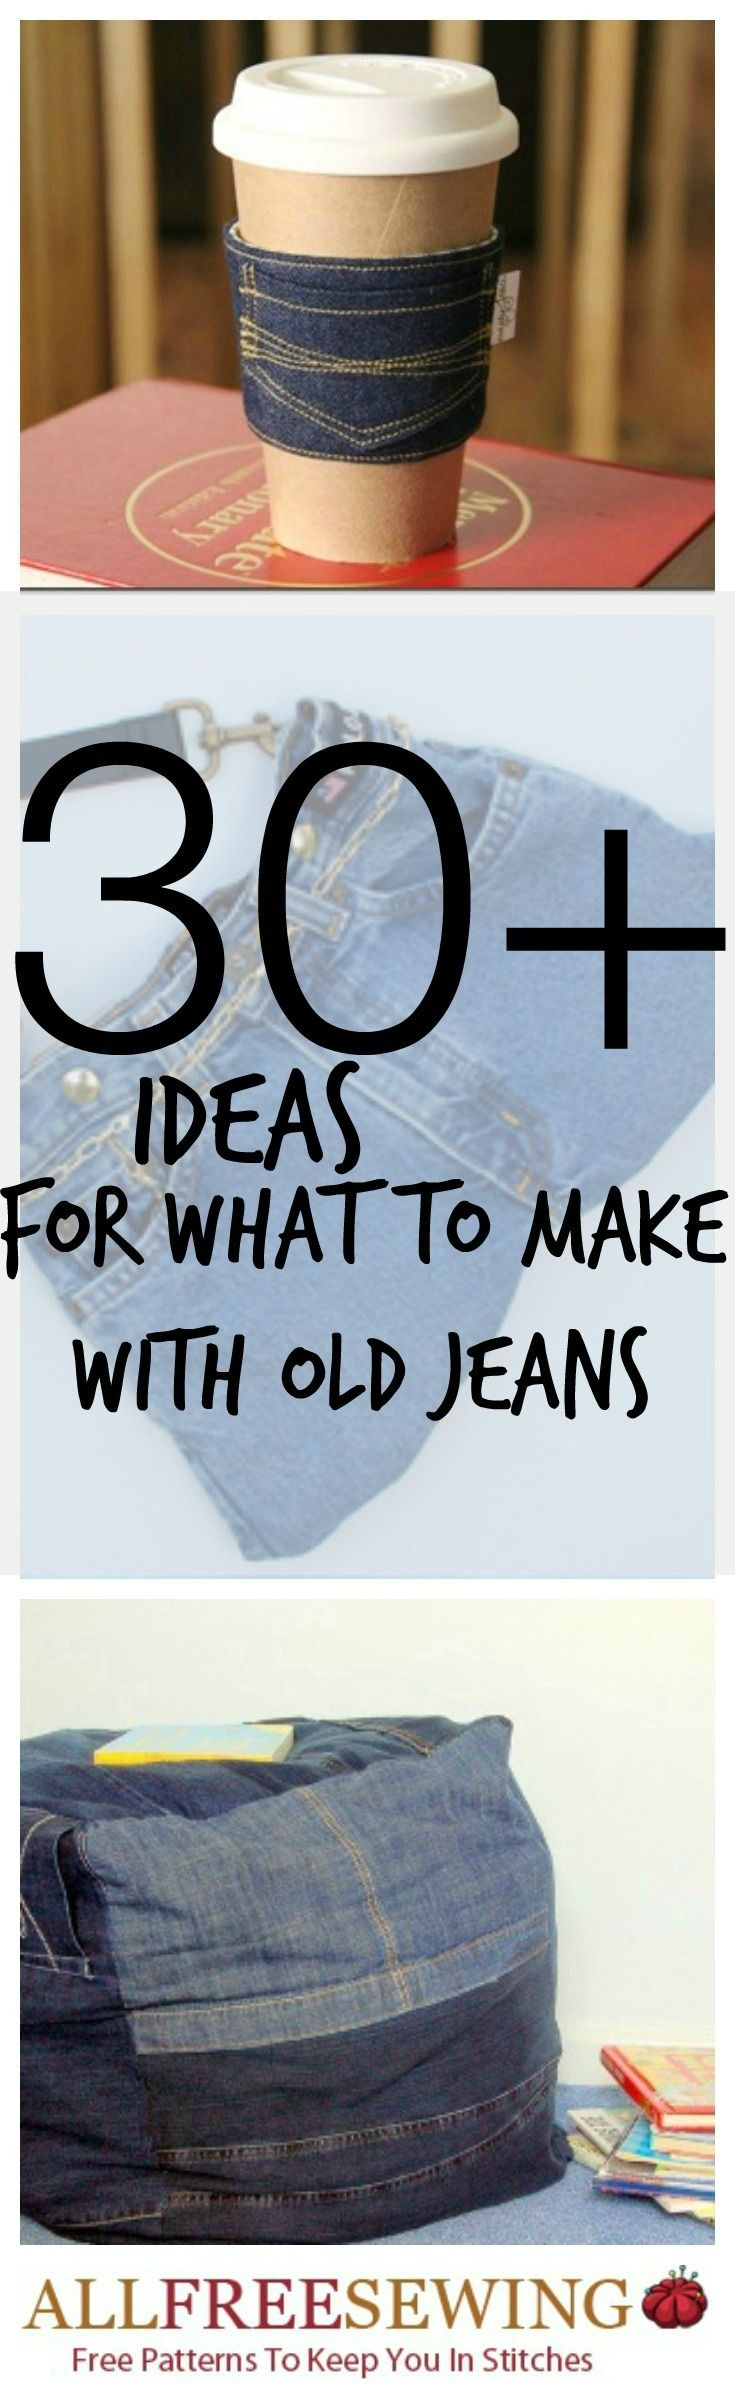 Blue apron how to recycle - The 25 Best Ideas About Recycled Denim Crafts On Pinterest Denim Quilts Blue Quilts And Blue Jean Quilts